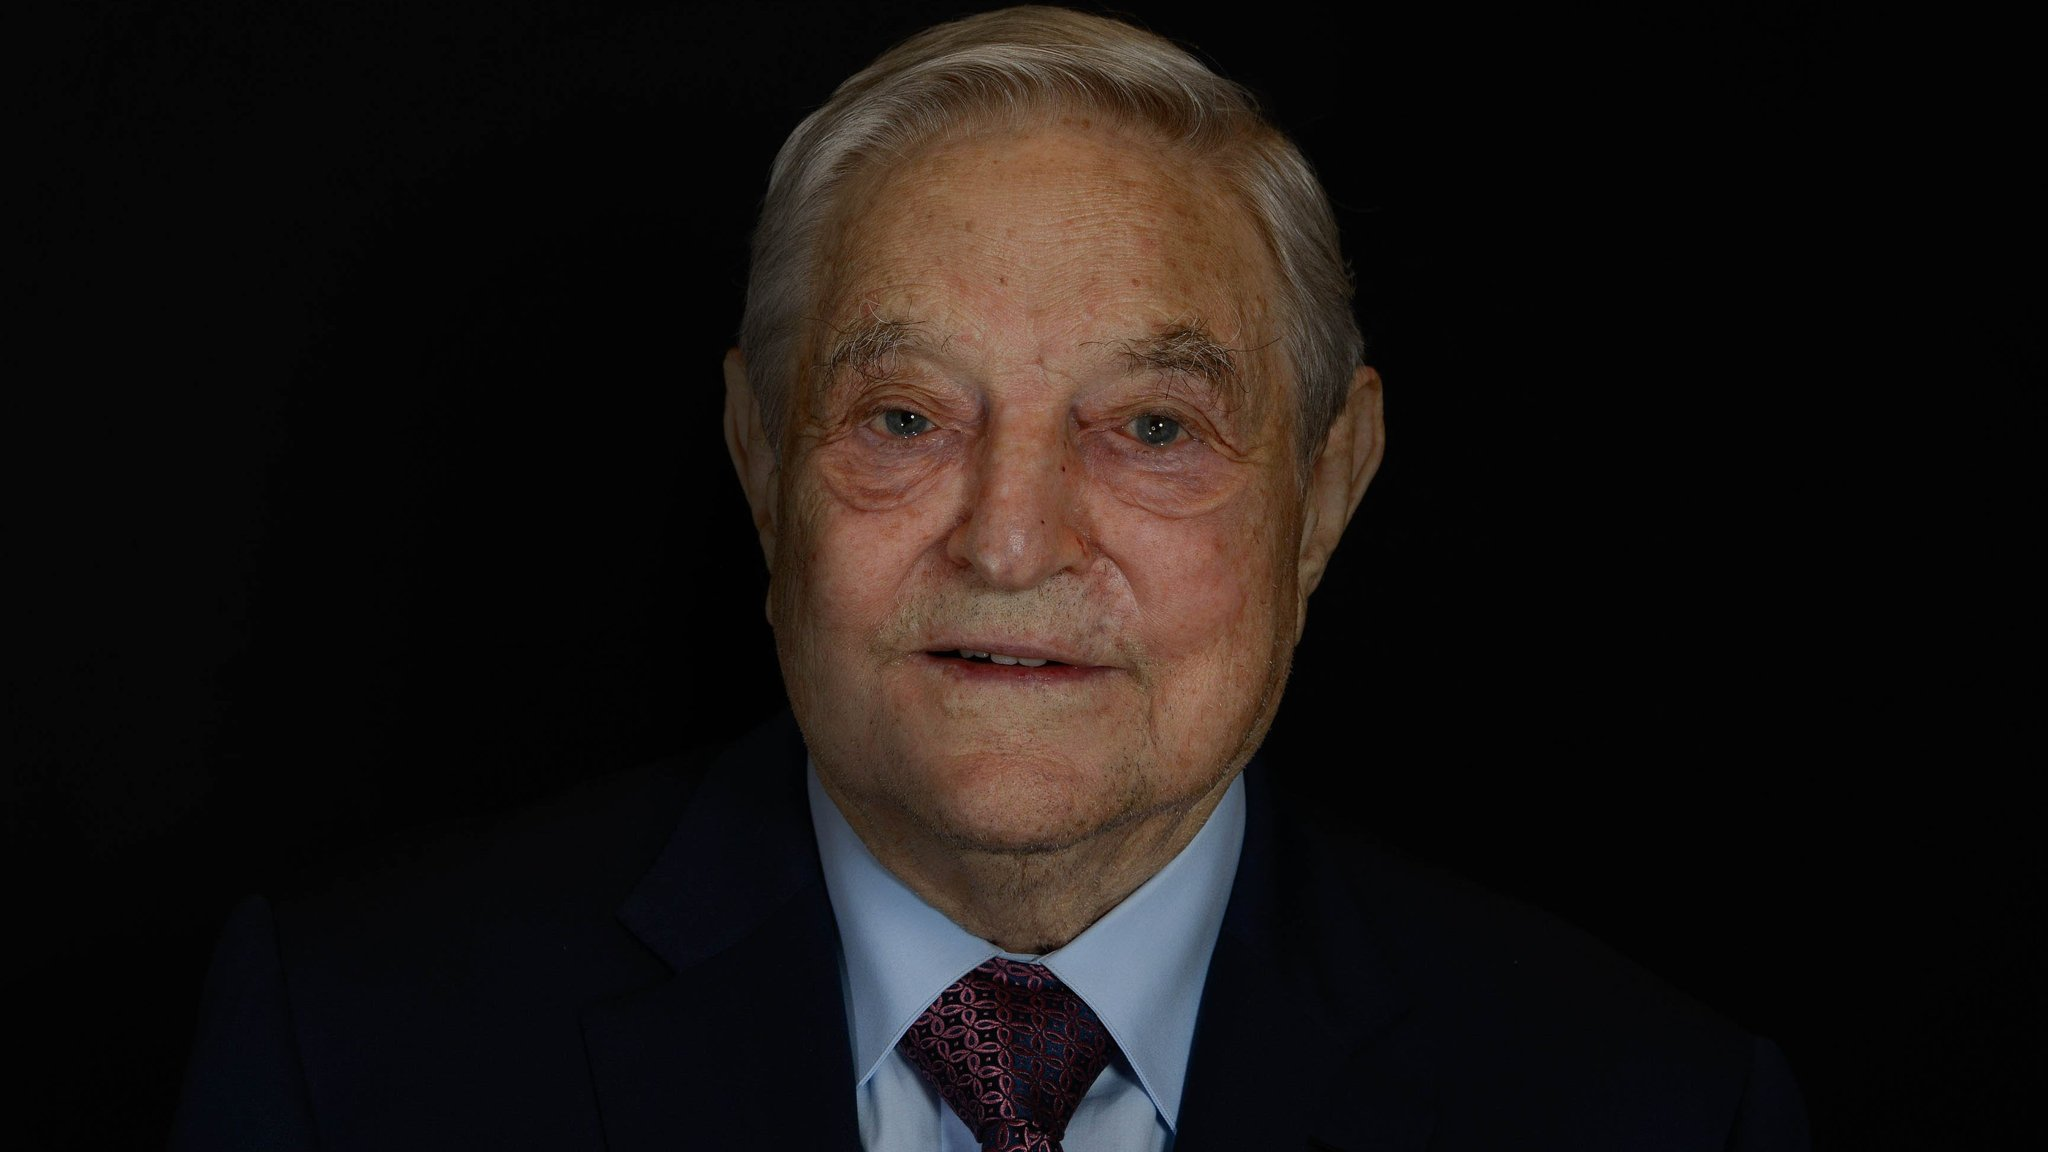 George Soros attacks 'hate-mongering' of Viktor Orban's Hungary